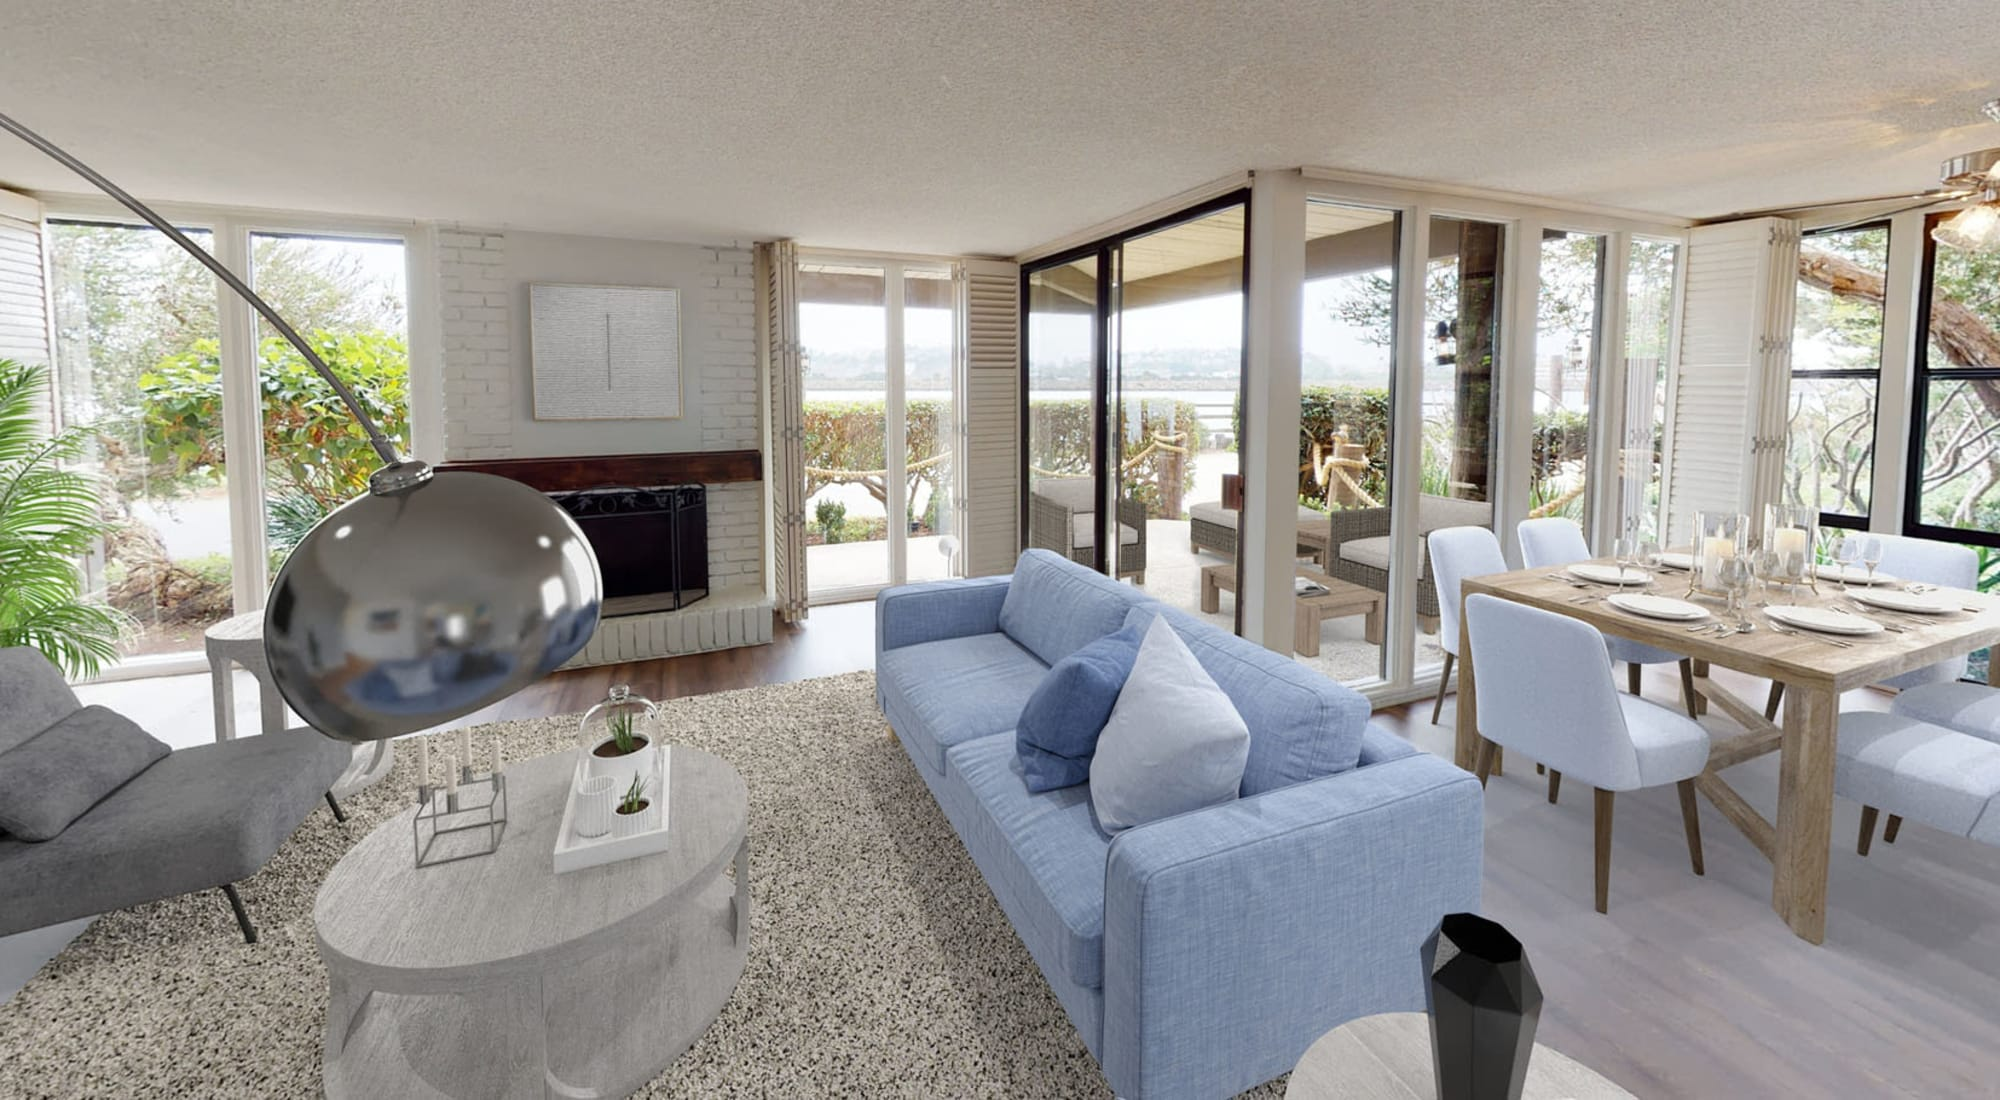 Plush carpeting and floor-to-ceiling windows in a model home's living area at Primary bedroom with large bay windows and a walk-in closet in a model home at Mariners Village in Marina del Rey, California